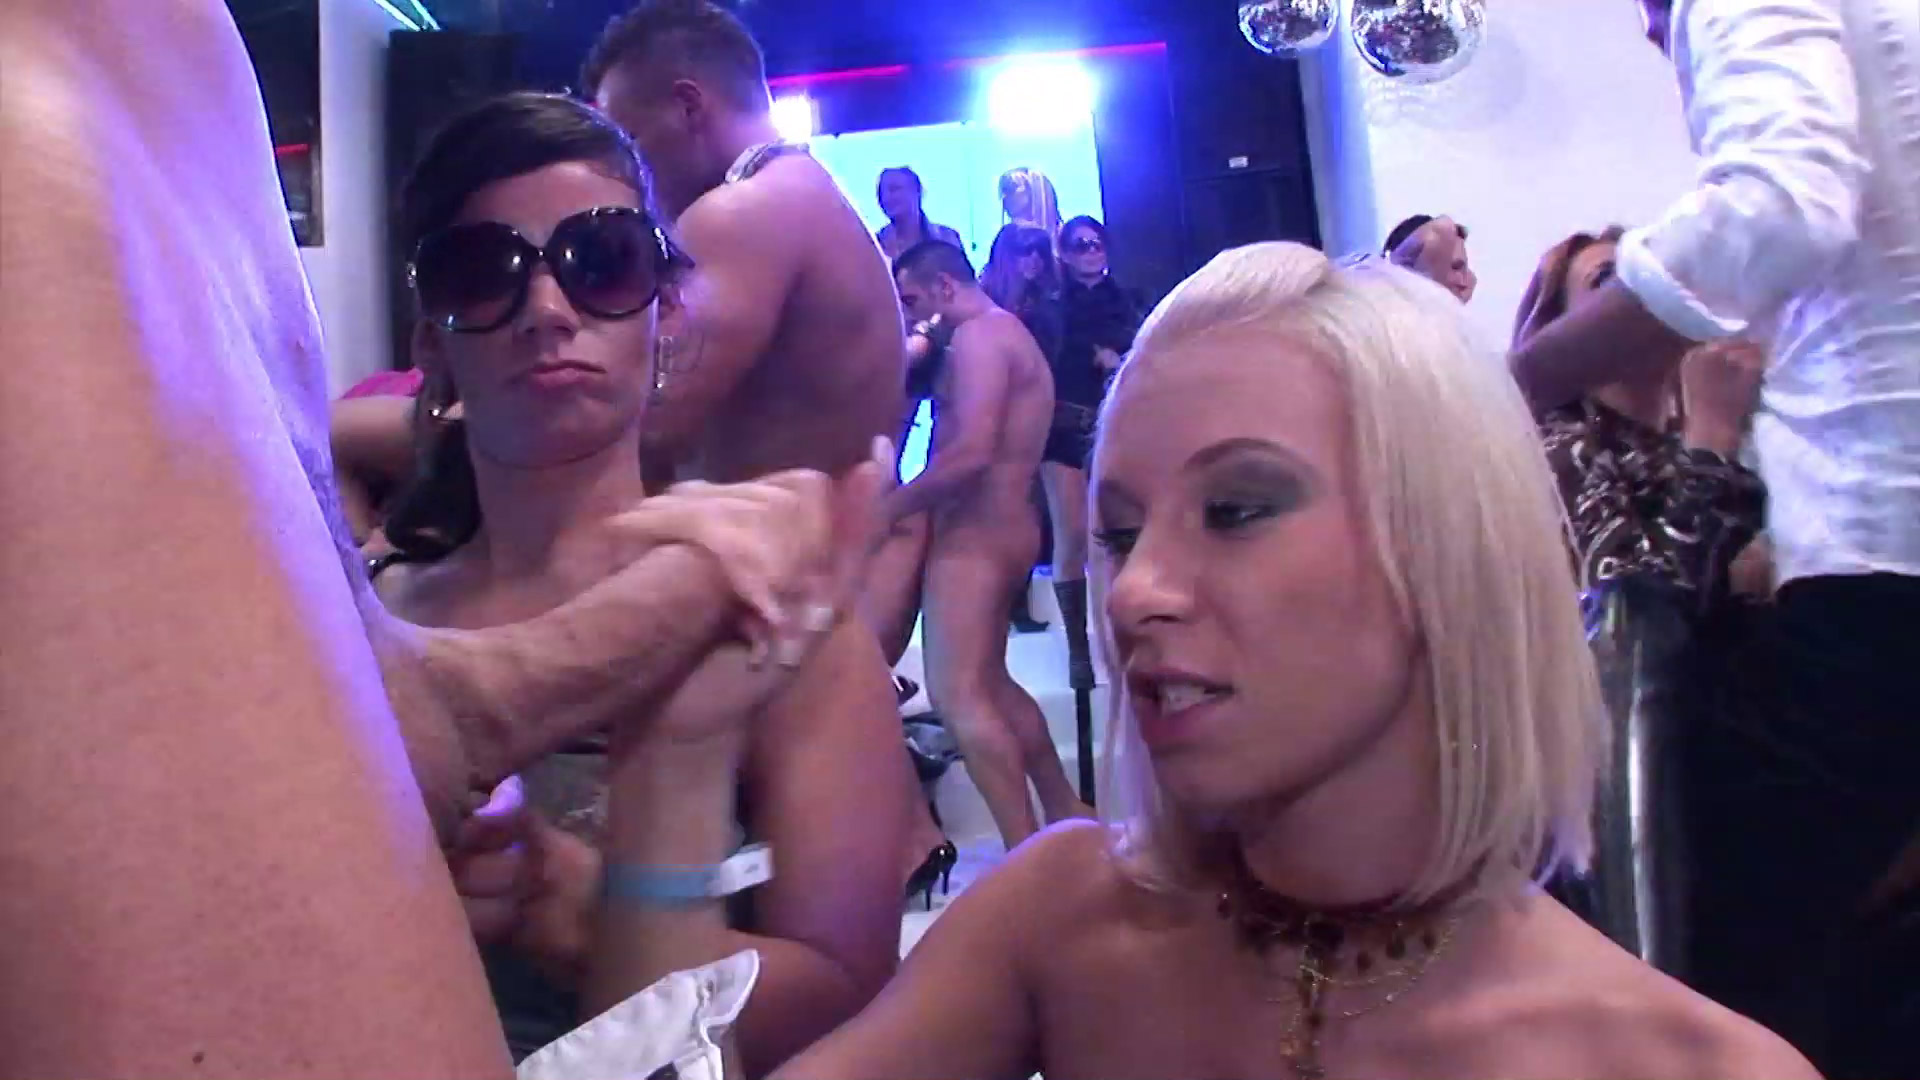 gang bang party sex in bremerhaven